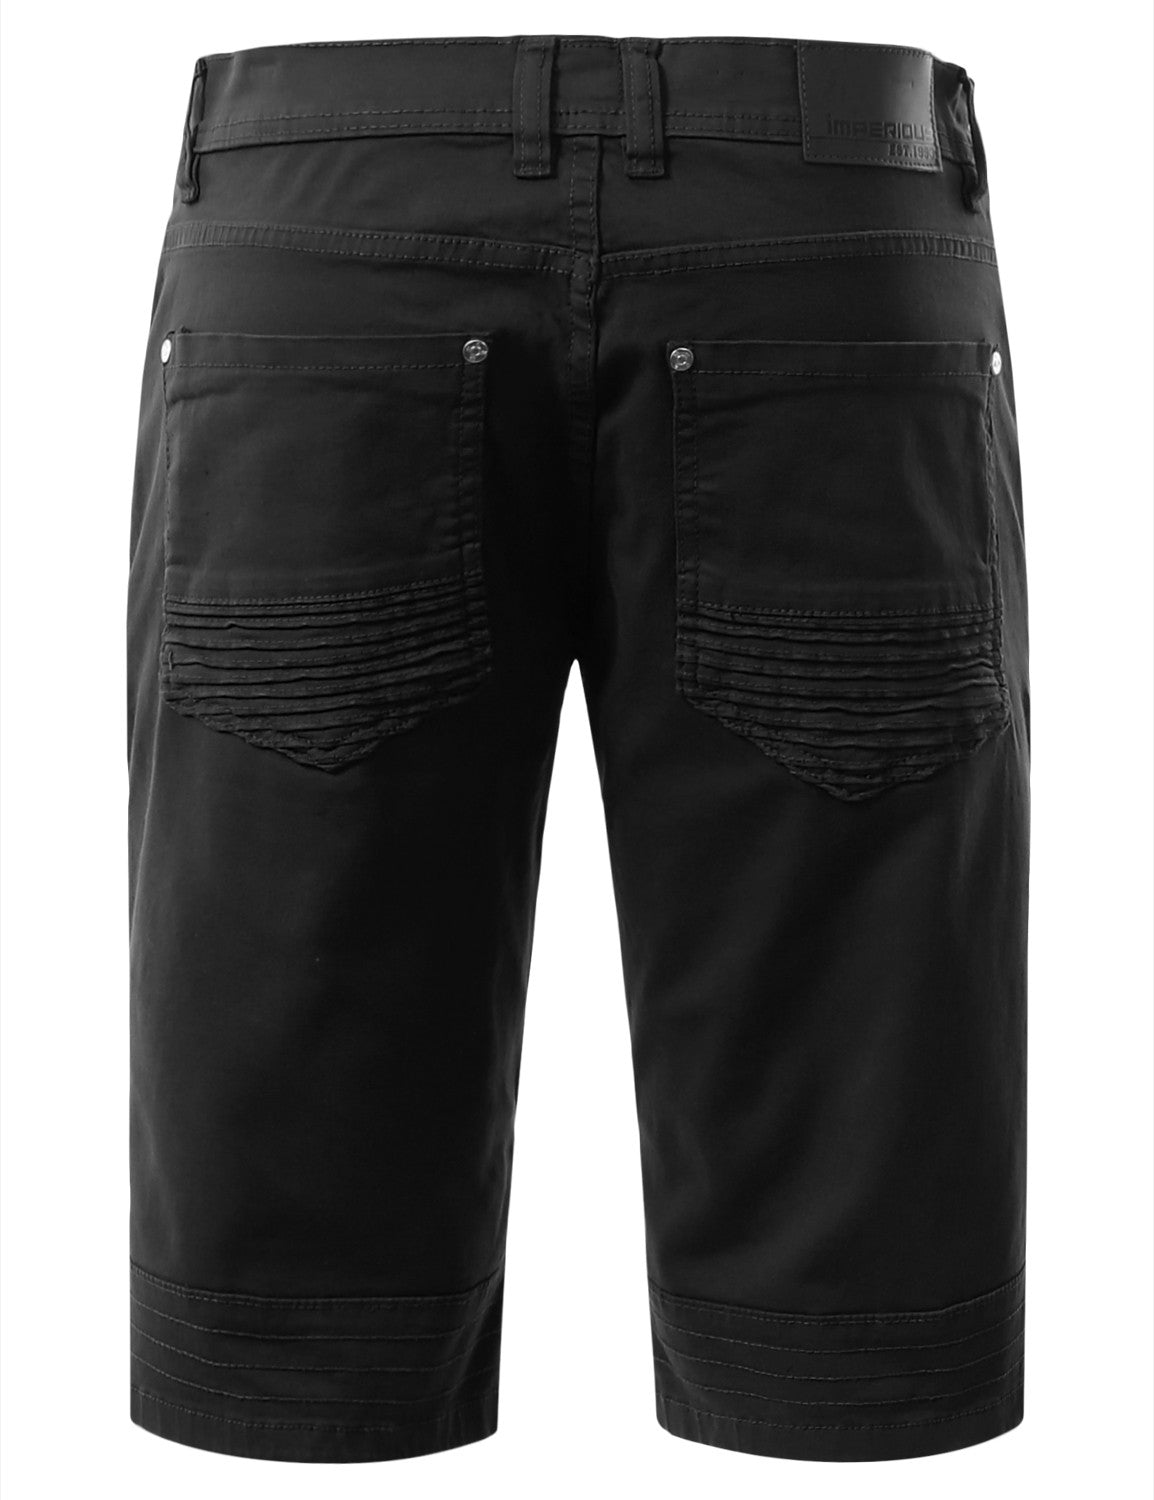 Biker Denim Shorts - URBANCREWS - 3